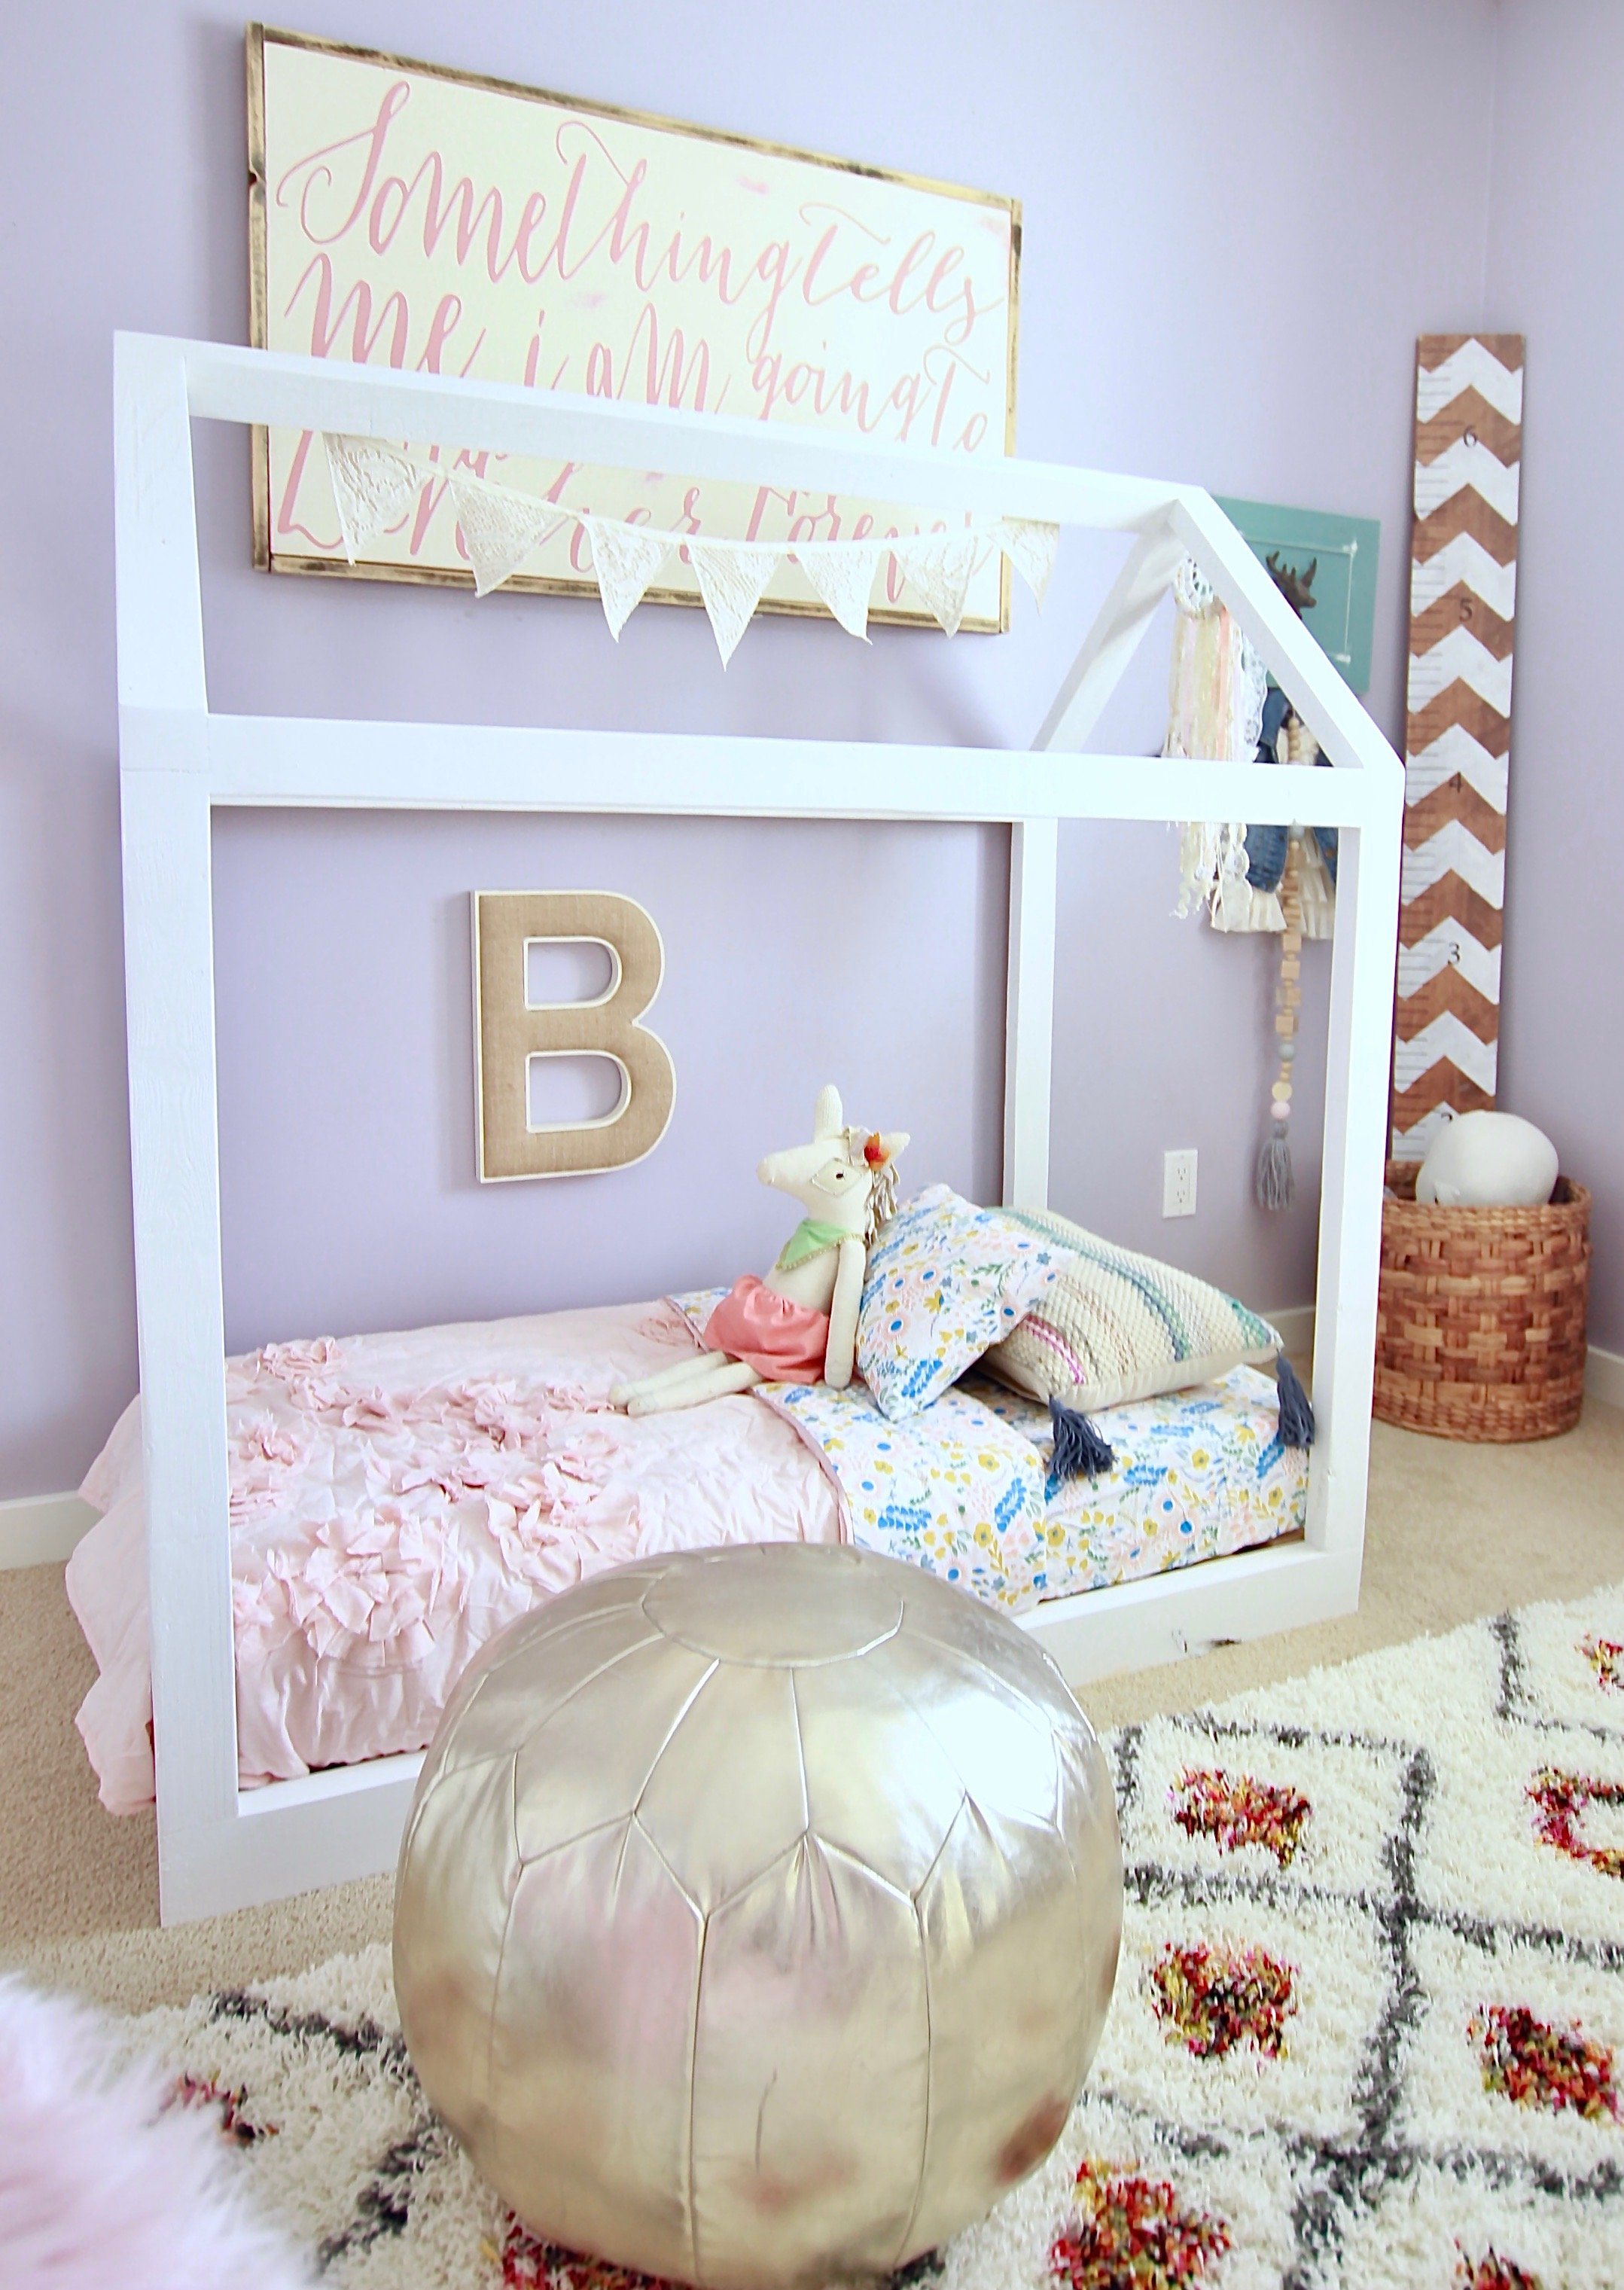 Our Super Easy DIY Toddler House Bed. This bed took under 2 hours and 40 dollars to make. www.whitepicketfarmhouse.com